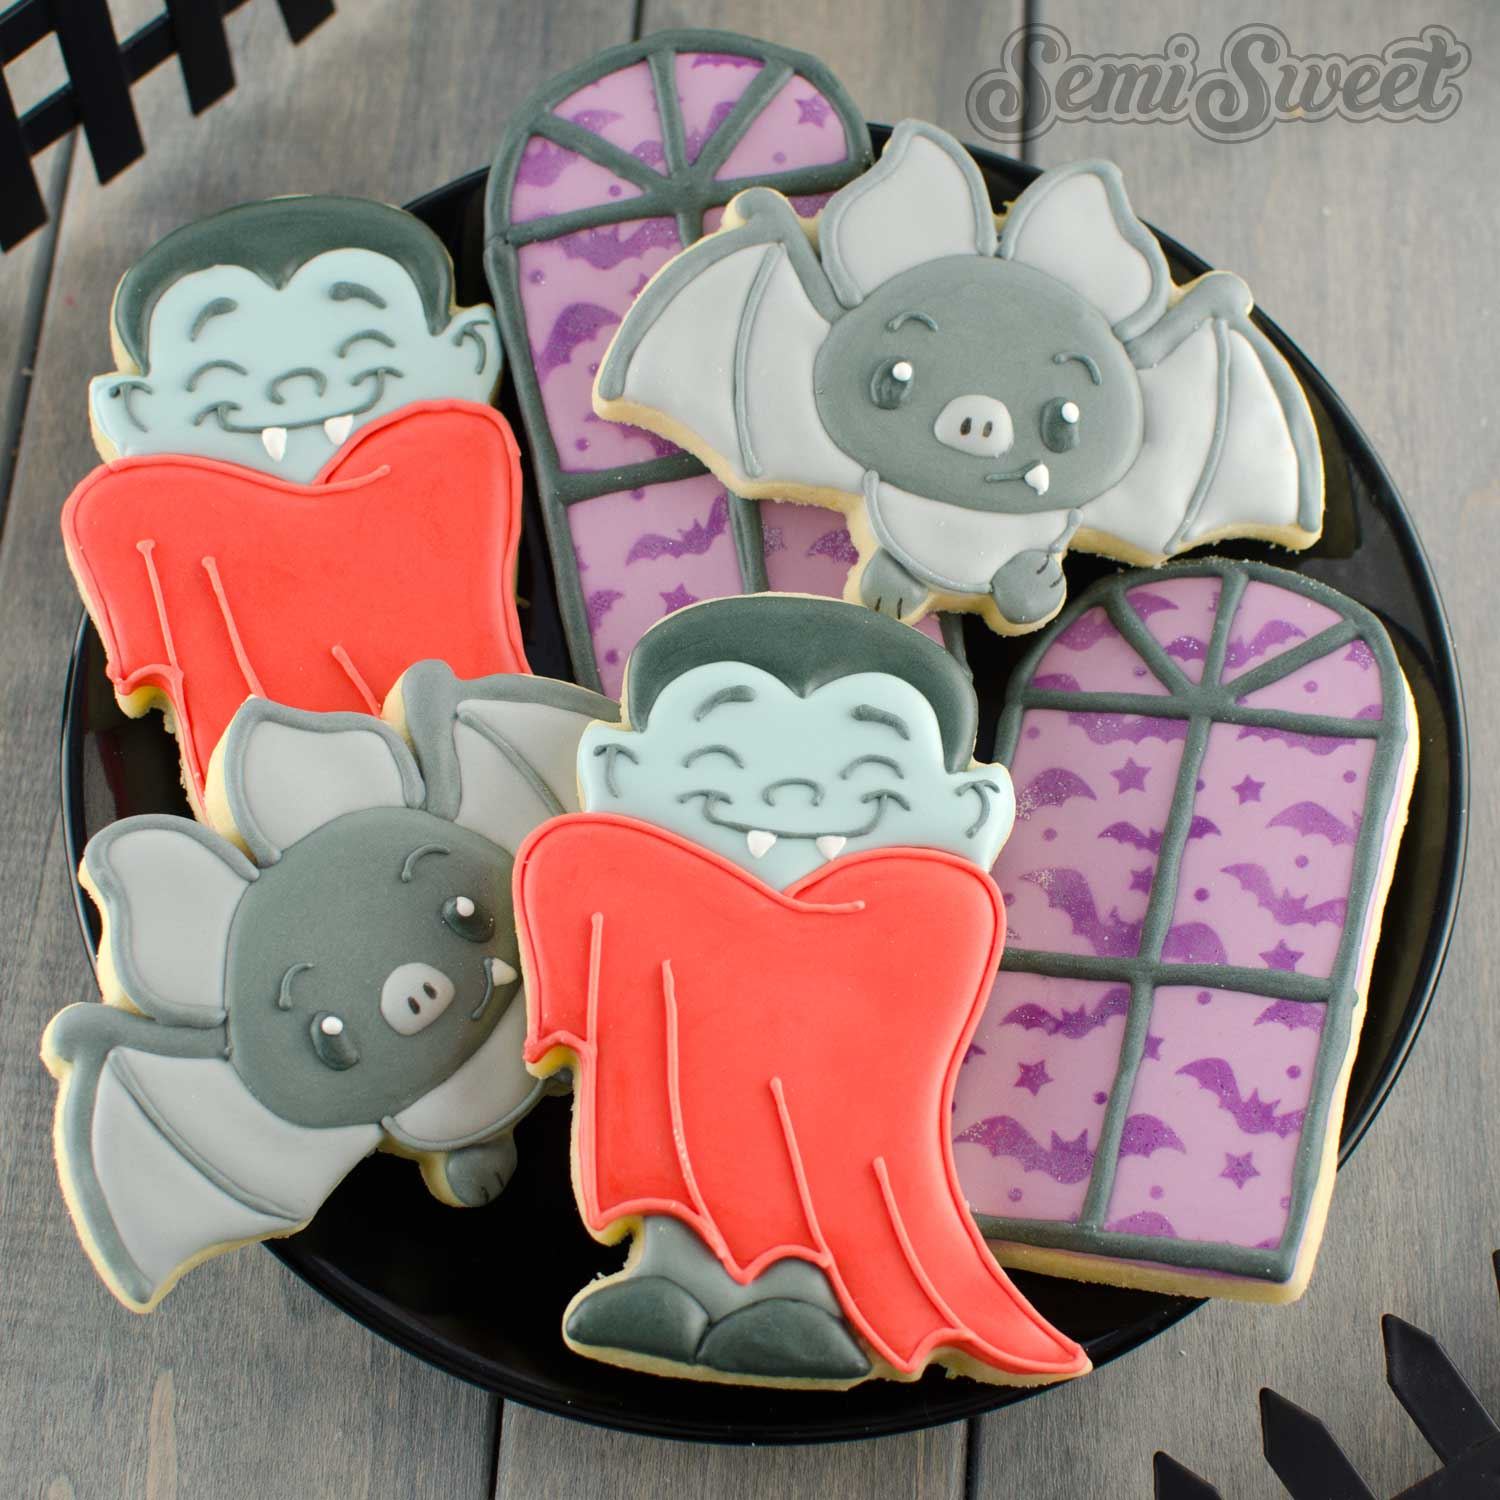 How to Make Vampire Cookies